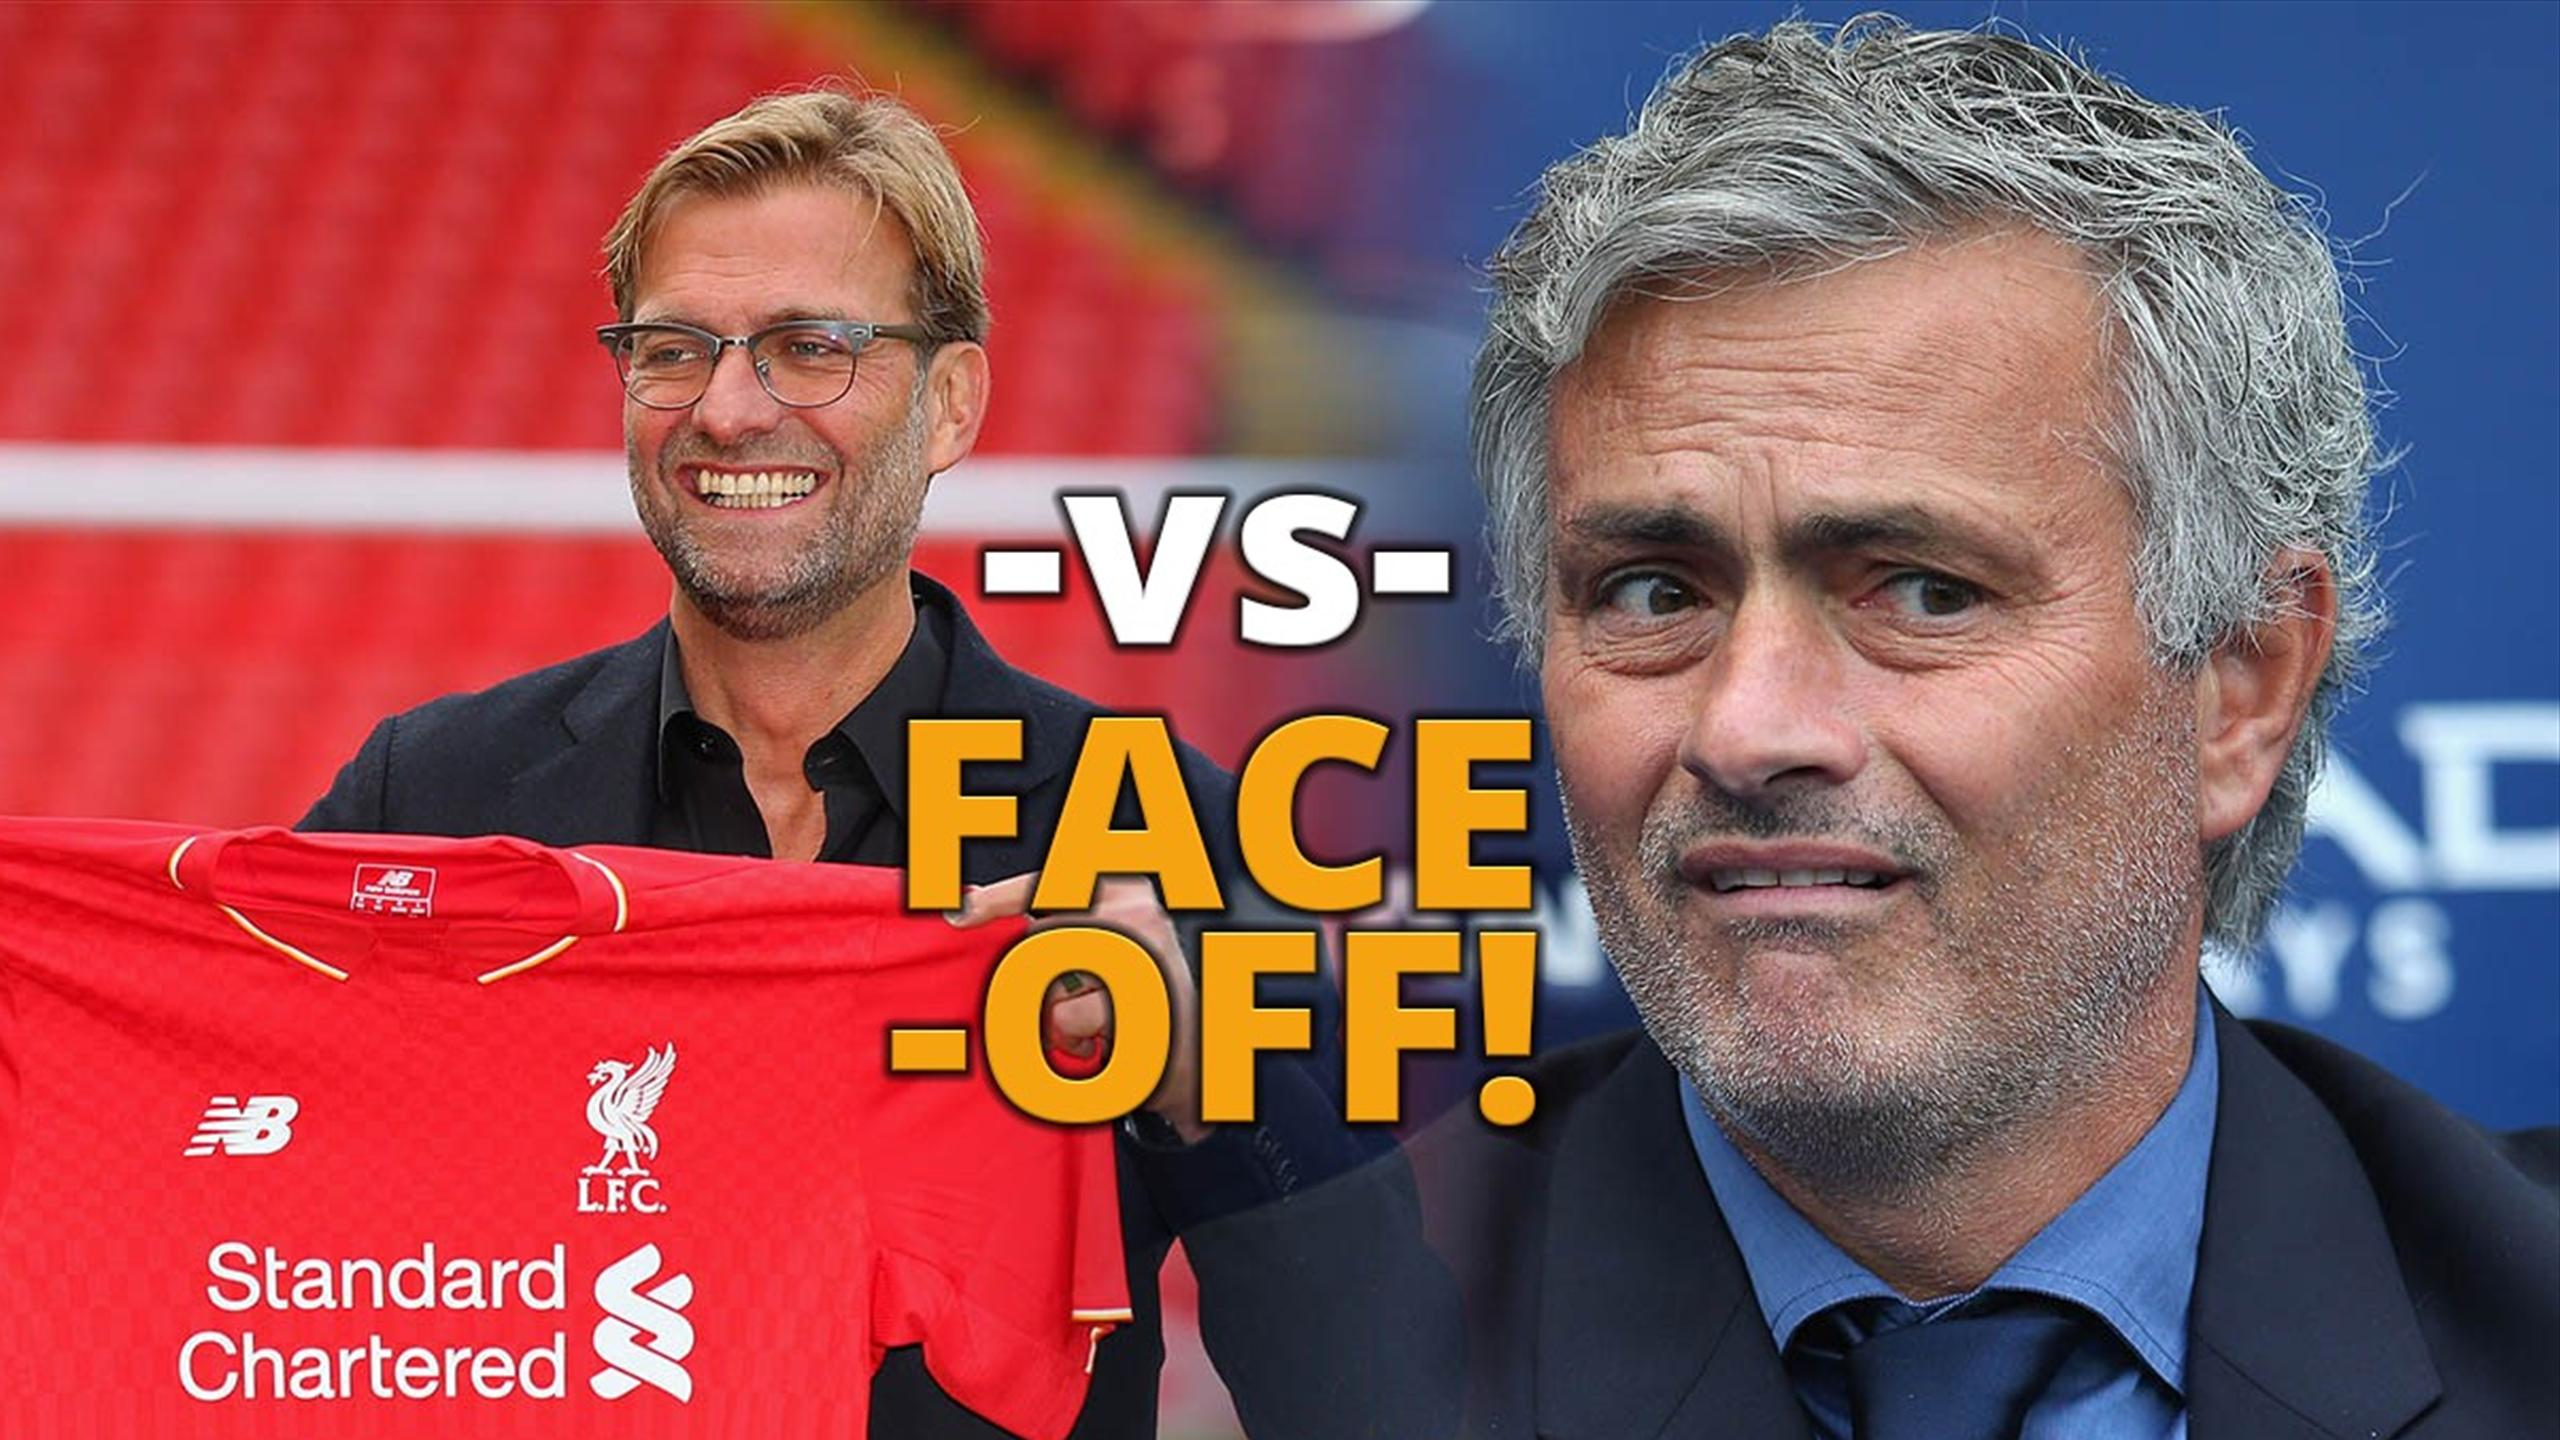 Face-off! It's Klopp vs Mourinho in the Liverpool vs Manchester United derby